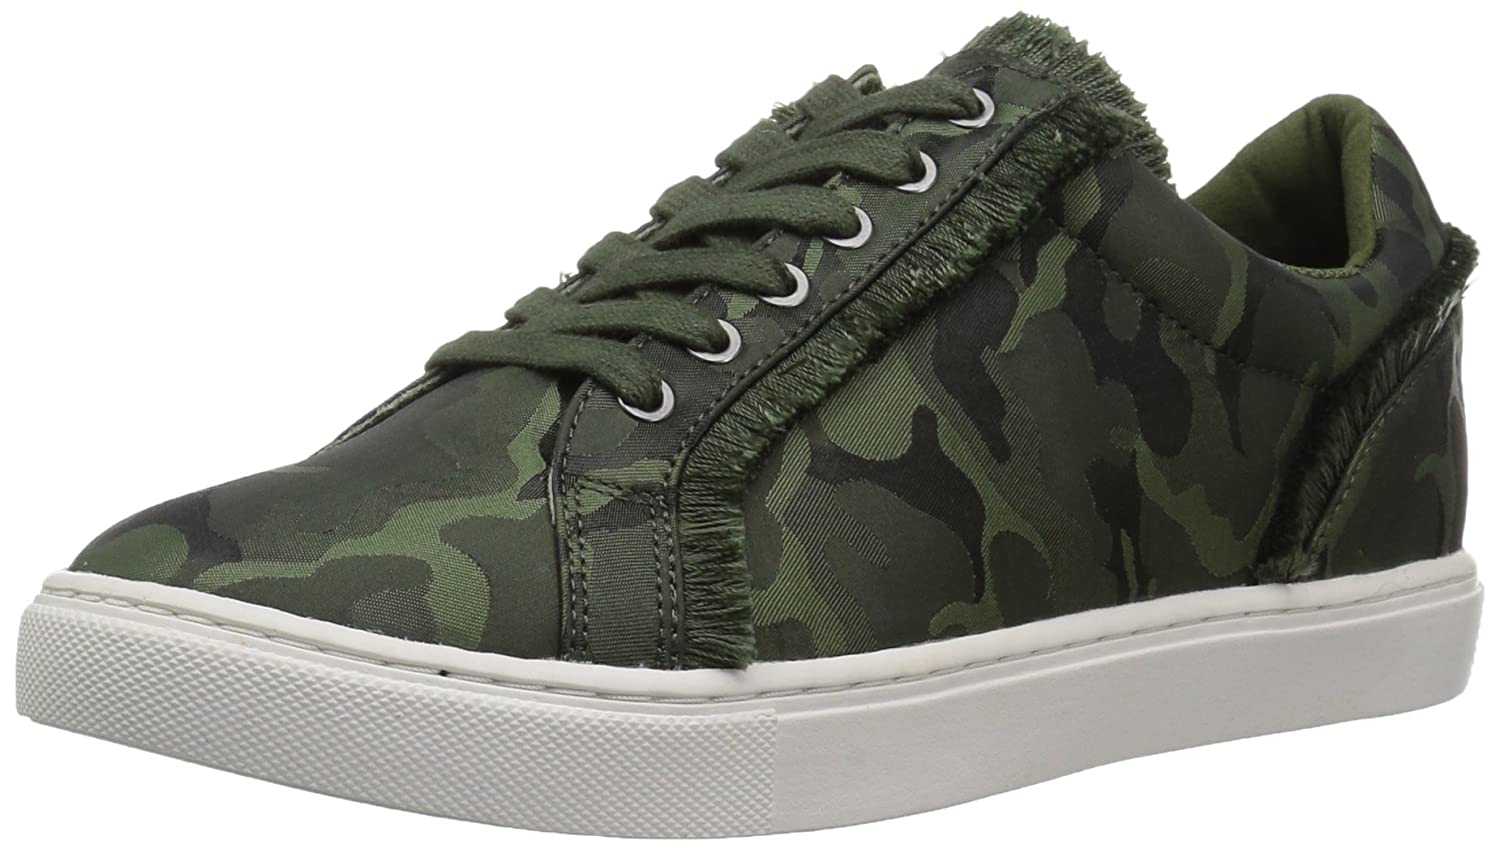 The Fix Womens Tinsley Frayed Silk Lace-up Sneaker B074K4NFS3 9 B(M) US|Autumn Green Camo Satin